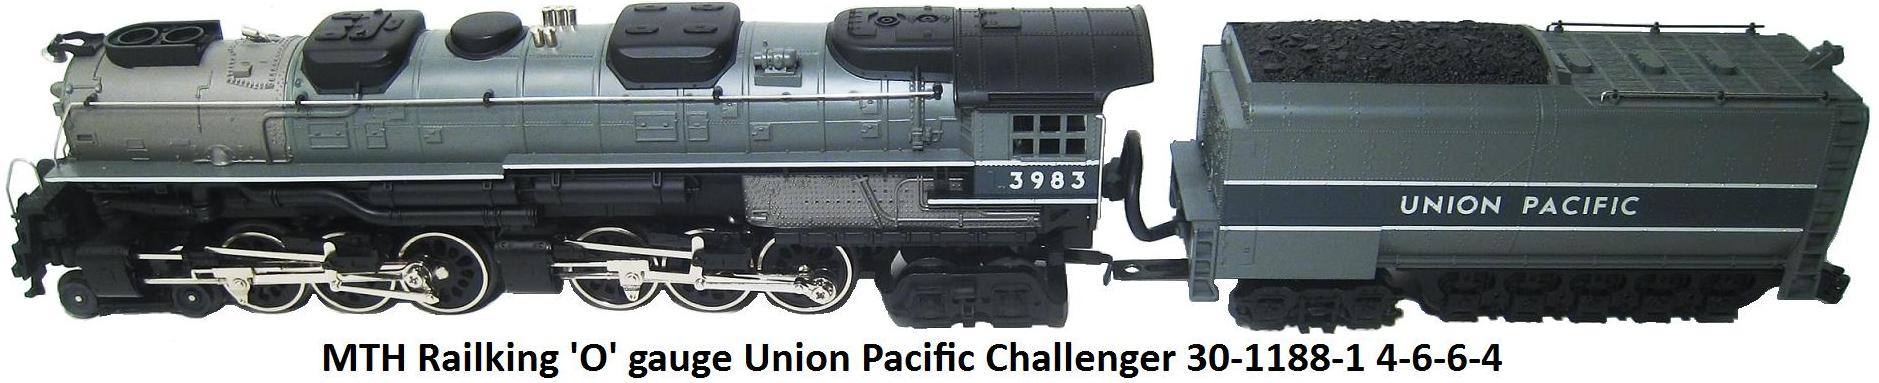 MTH Railking Union Pacific Challenger 30-1188-1 4-6-6-4 locomotive in 'O' gauge